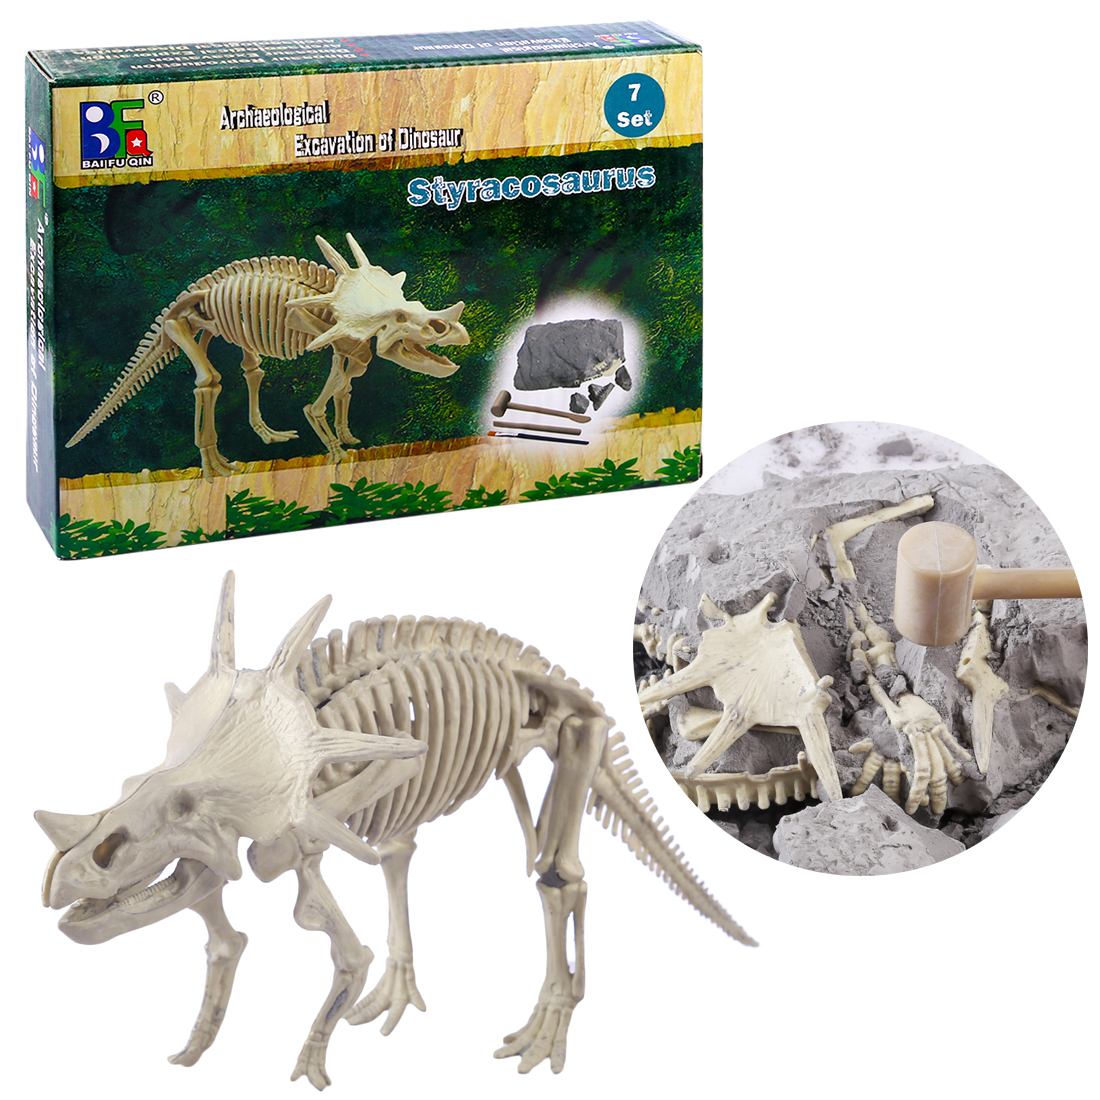 Children Creative Educational Gypsum Plastic Dinosaur Archaeology Excavation Kits Toys Novelty Digging Early Development Toy New